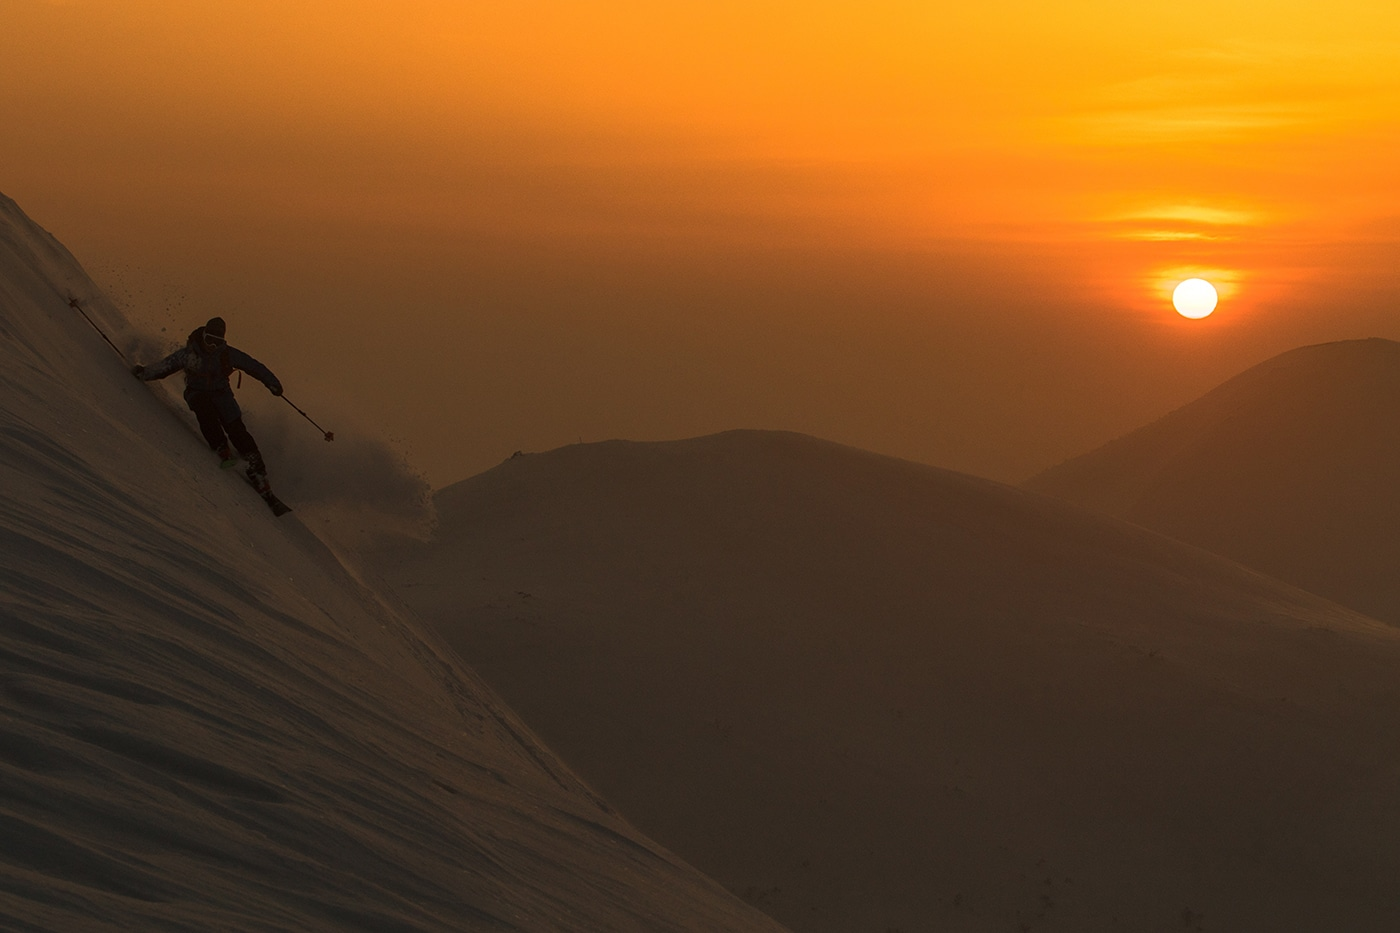 Incredible picture of Bine Zalohar skiing powder during sunset